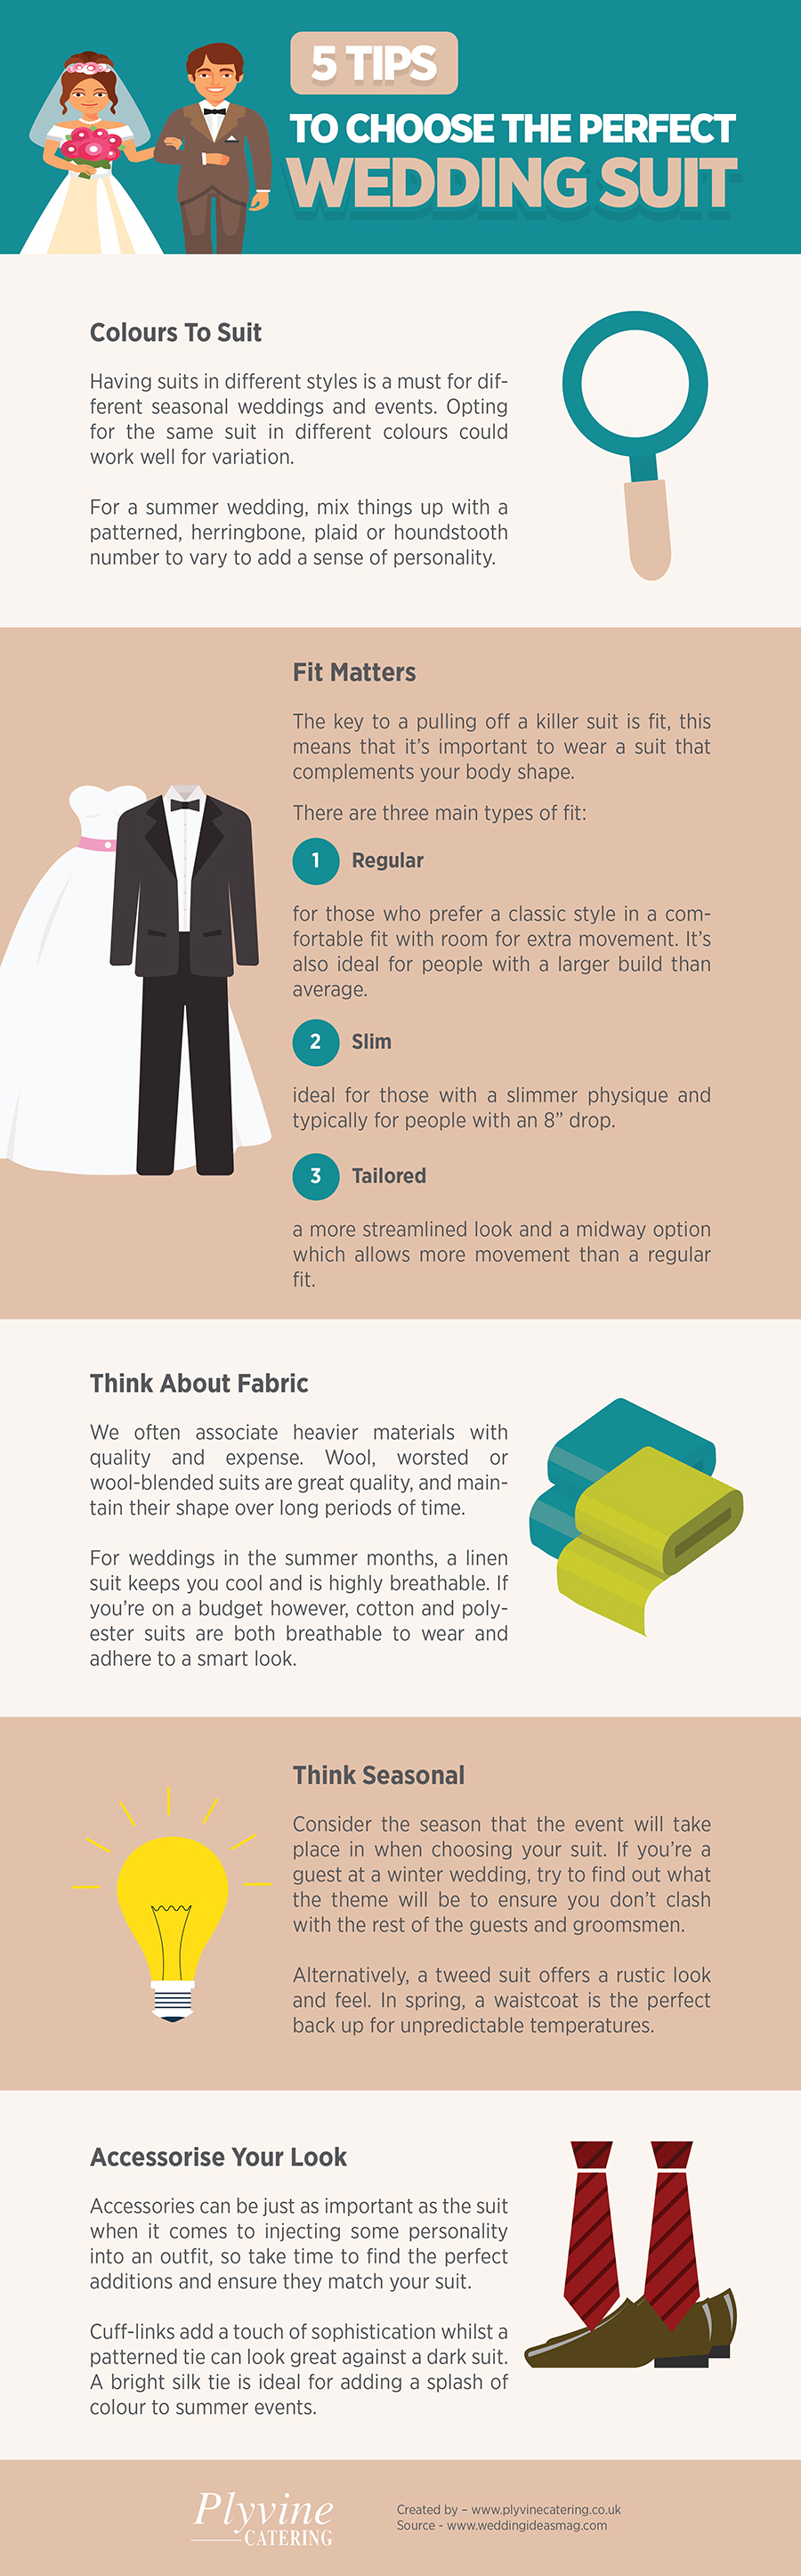 5 Tips to Choose the Perfect Wedding Suit